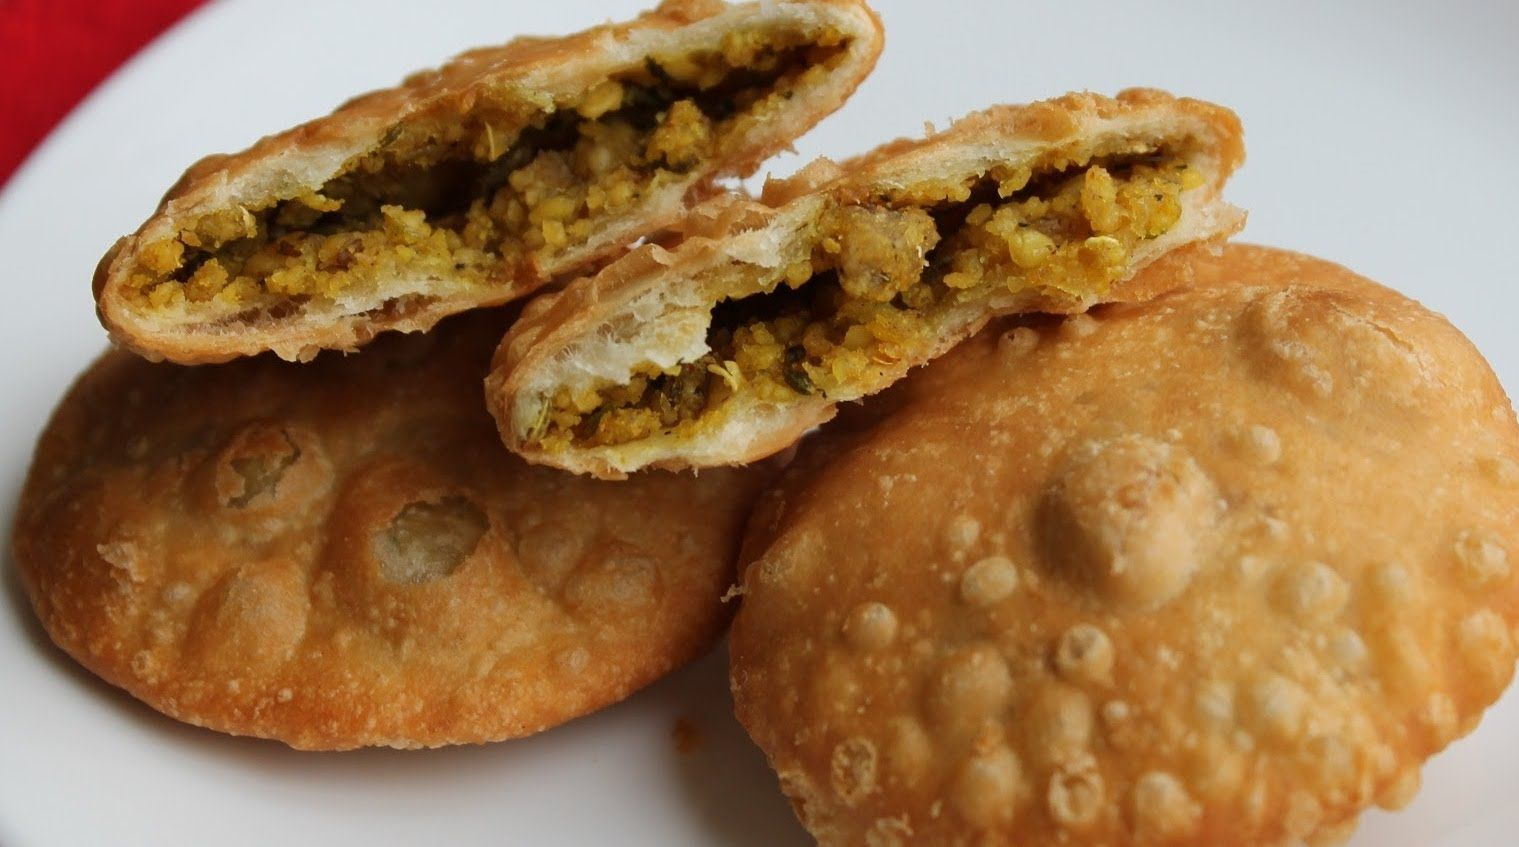 Urud daal kachori north indian food recipe indian cooking how to urud daal kachori north indian food recipe indian cooking how to cook daal kachori forumfinder Image collections